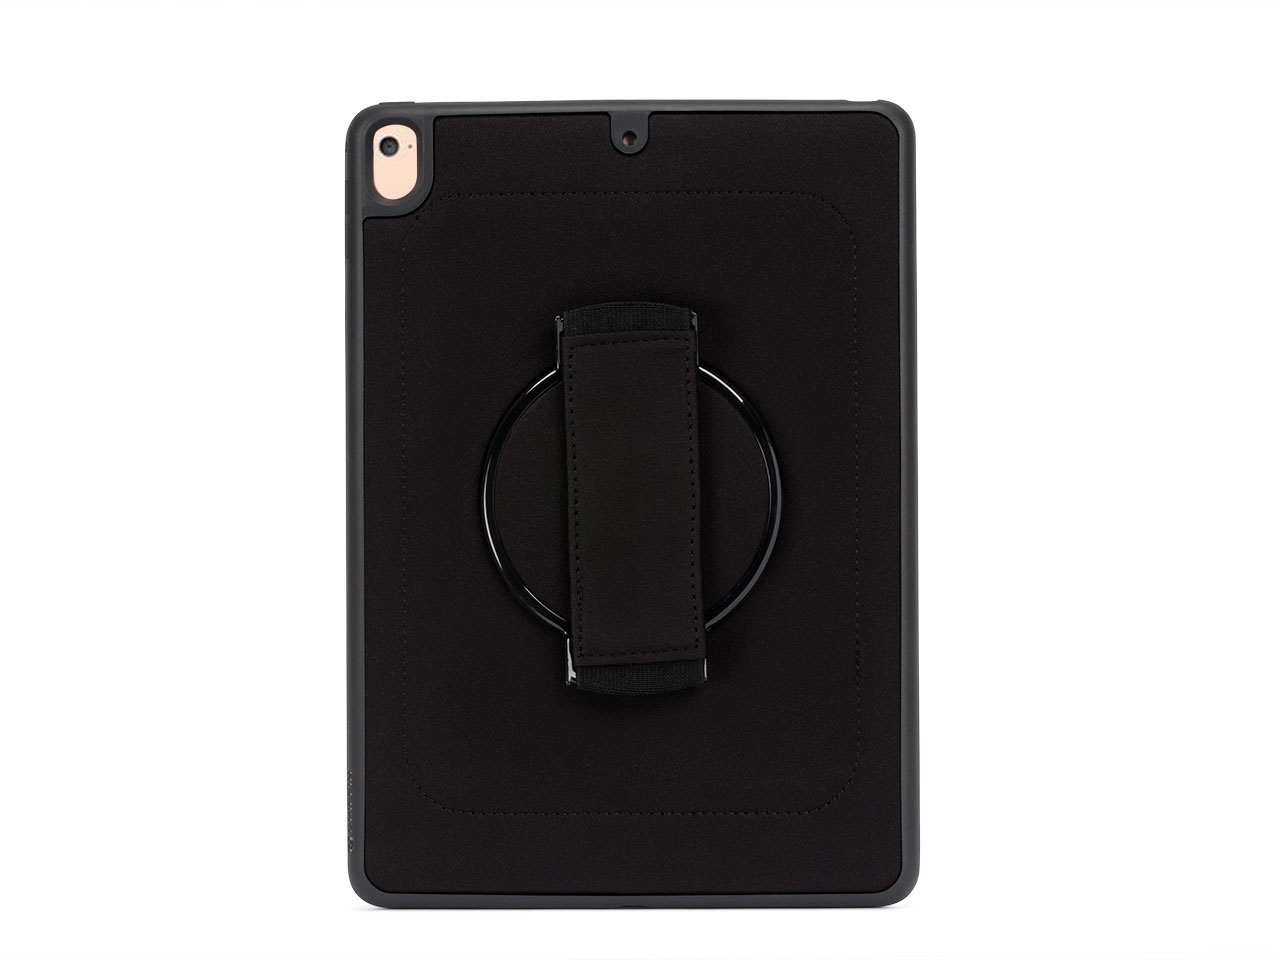 Whether you're reading in a coffee shop, or checking out the headlines as you ride the 6:45 in to work, AirStrap 360 makes it easier, safer, and more fun to use your iPad.  Hold On Tight –Slip your hand under the strap on the back to experience the real beauty of AirStrap 360 carrying case. It hugs your hand, gently but firmly, making your iPad easy to hold and leaving your other hand free to use your Multi-Touch display. The frame that grips your iPad rotates in 30° intervals, to give you the best viewing angle with the most natural position of your hand.  Drop Protection –AirStrap 360 surrounds your iPad with durable, shock-absorbent TPU rubber, protecting its edges without getting in the way of controls or ports. AirStrap 360's frame protects your iPad from three-foot (8-meter) drops onto concrete while raised edges around the screen protect the display from scratches when you lay your 9.7-inch iPad facedown on a table or desk. Sound ports on the top and